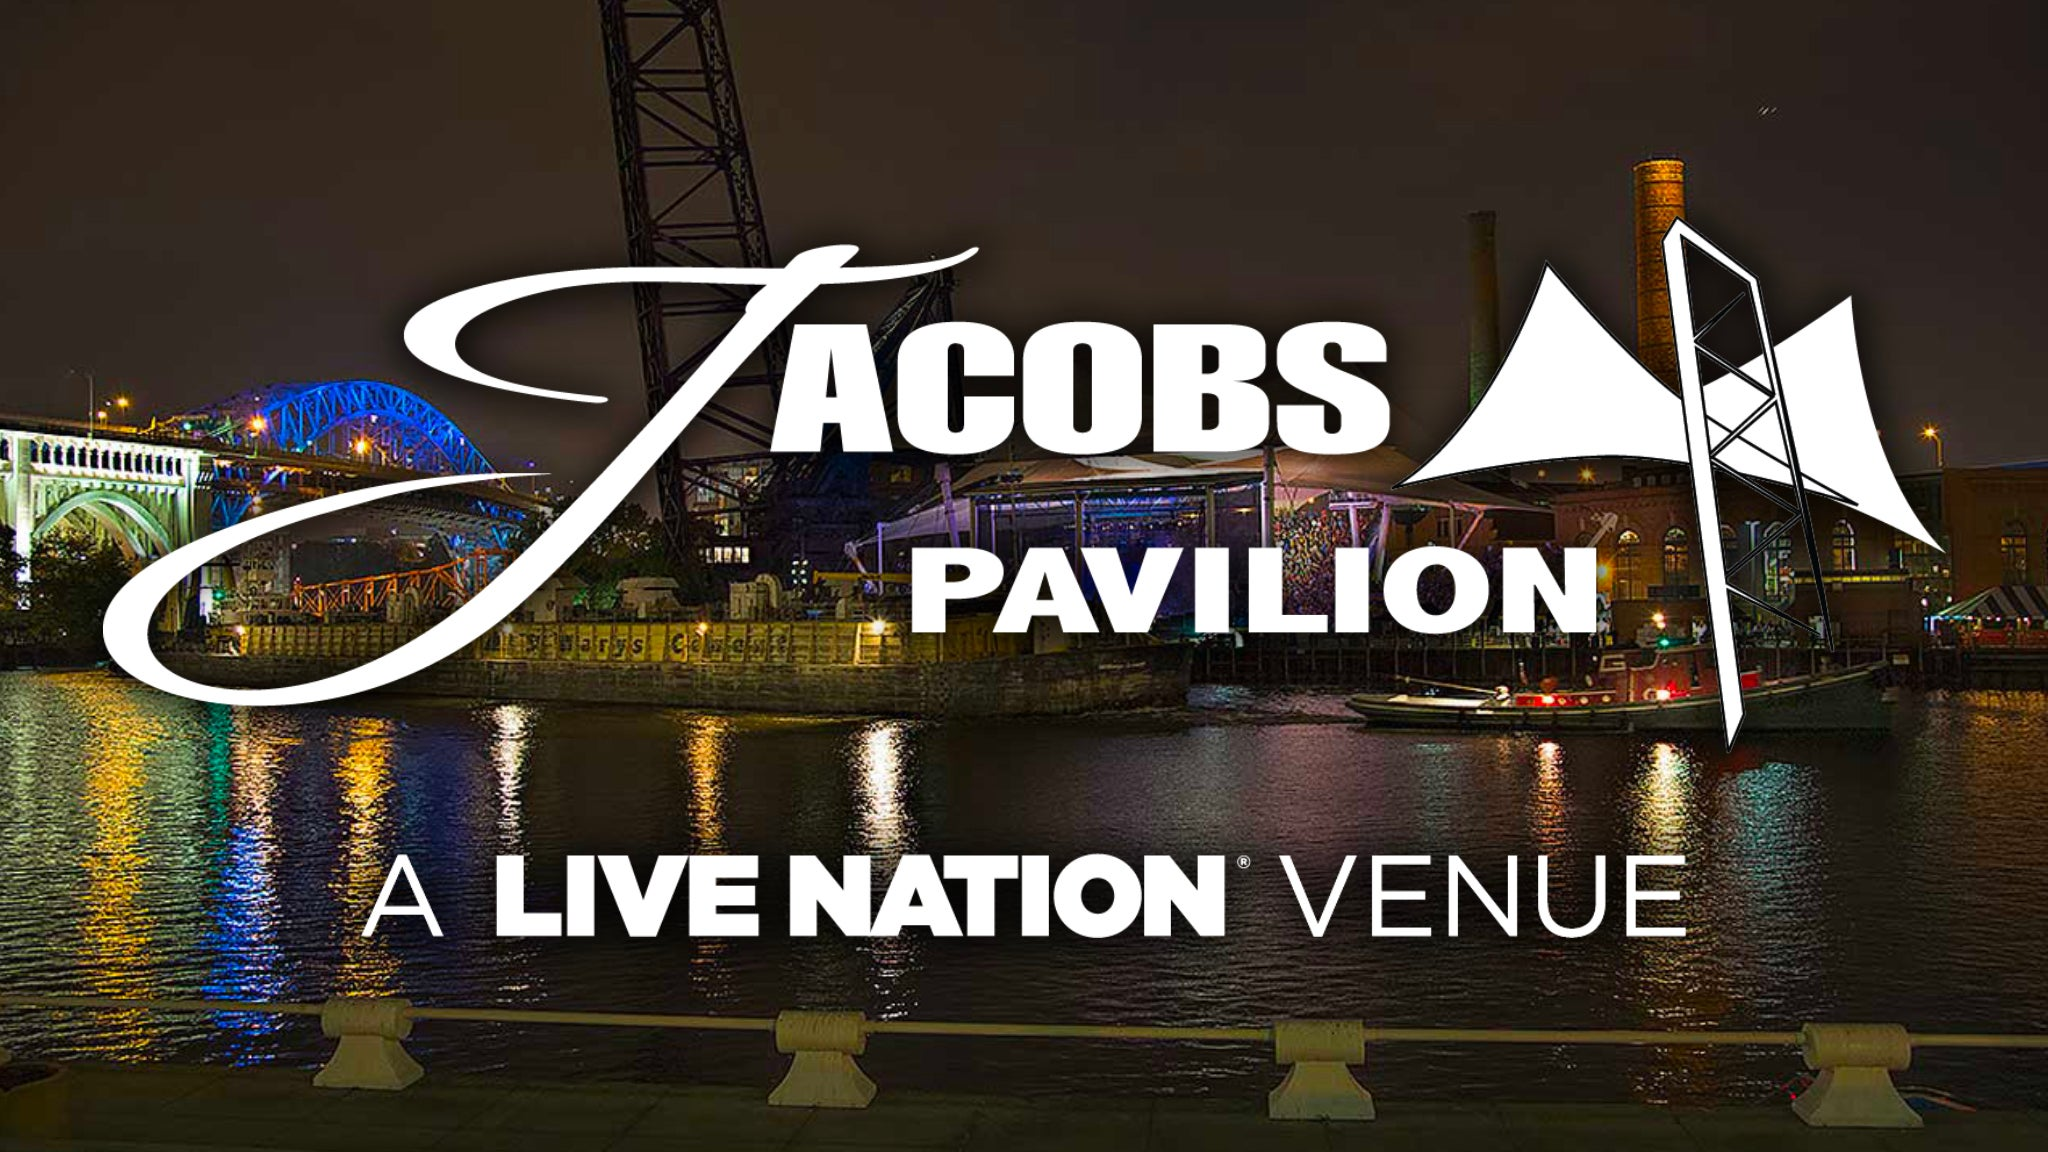 Jacobs Pavilion at Nautica (formerly Nautica Pavilion)